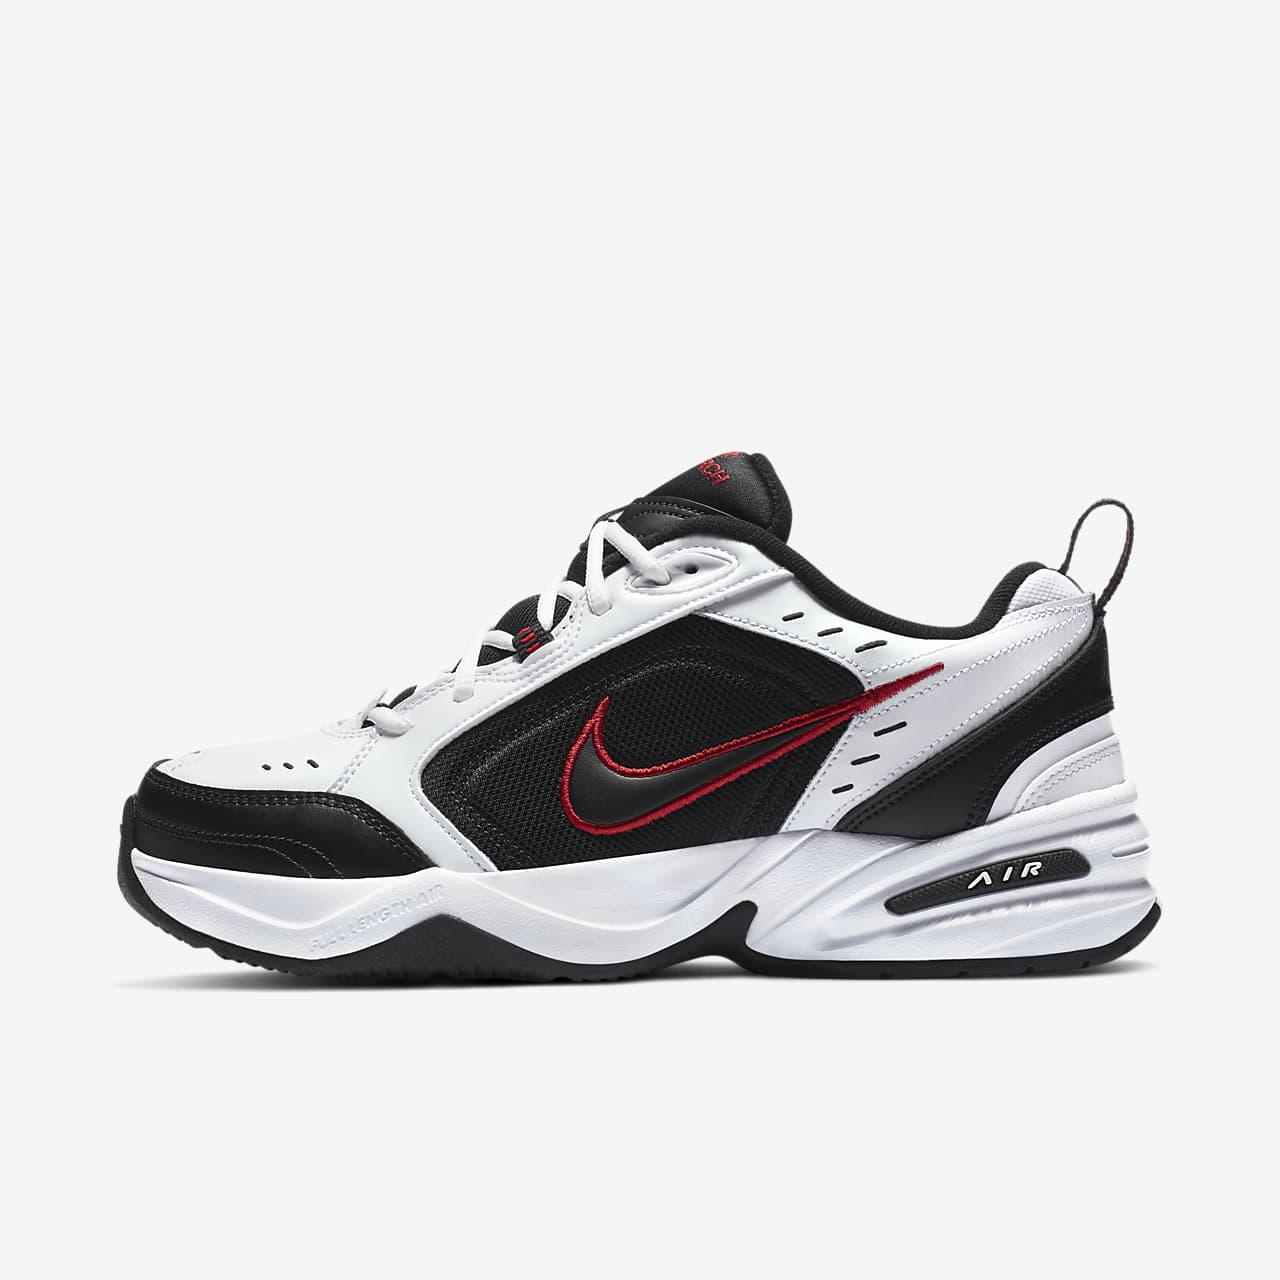 b1b3e3f6de2b Nike Air Monarch IV Lifestyle Gym Shoe. Nike.com NL